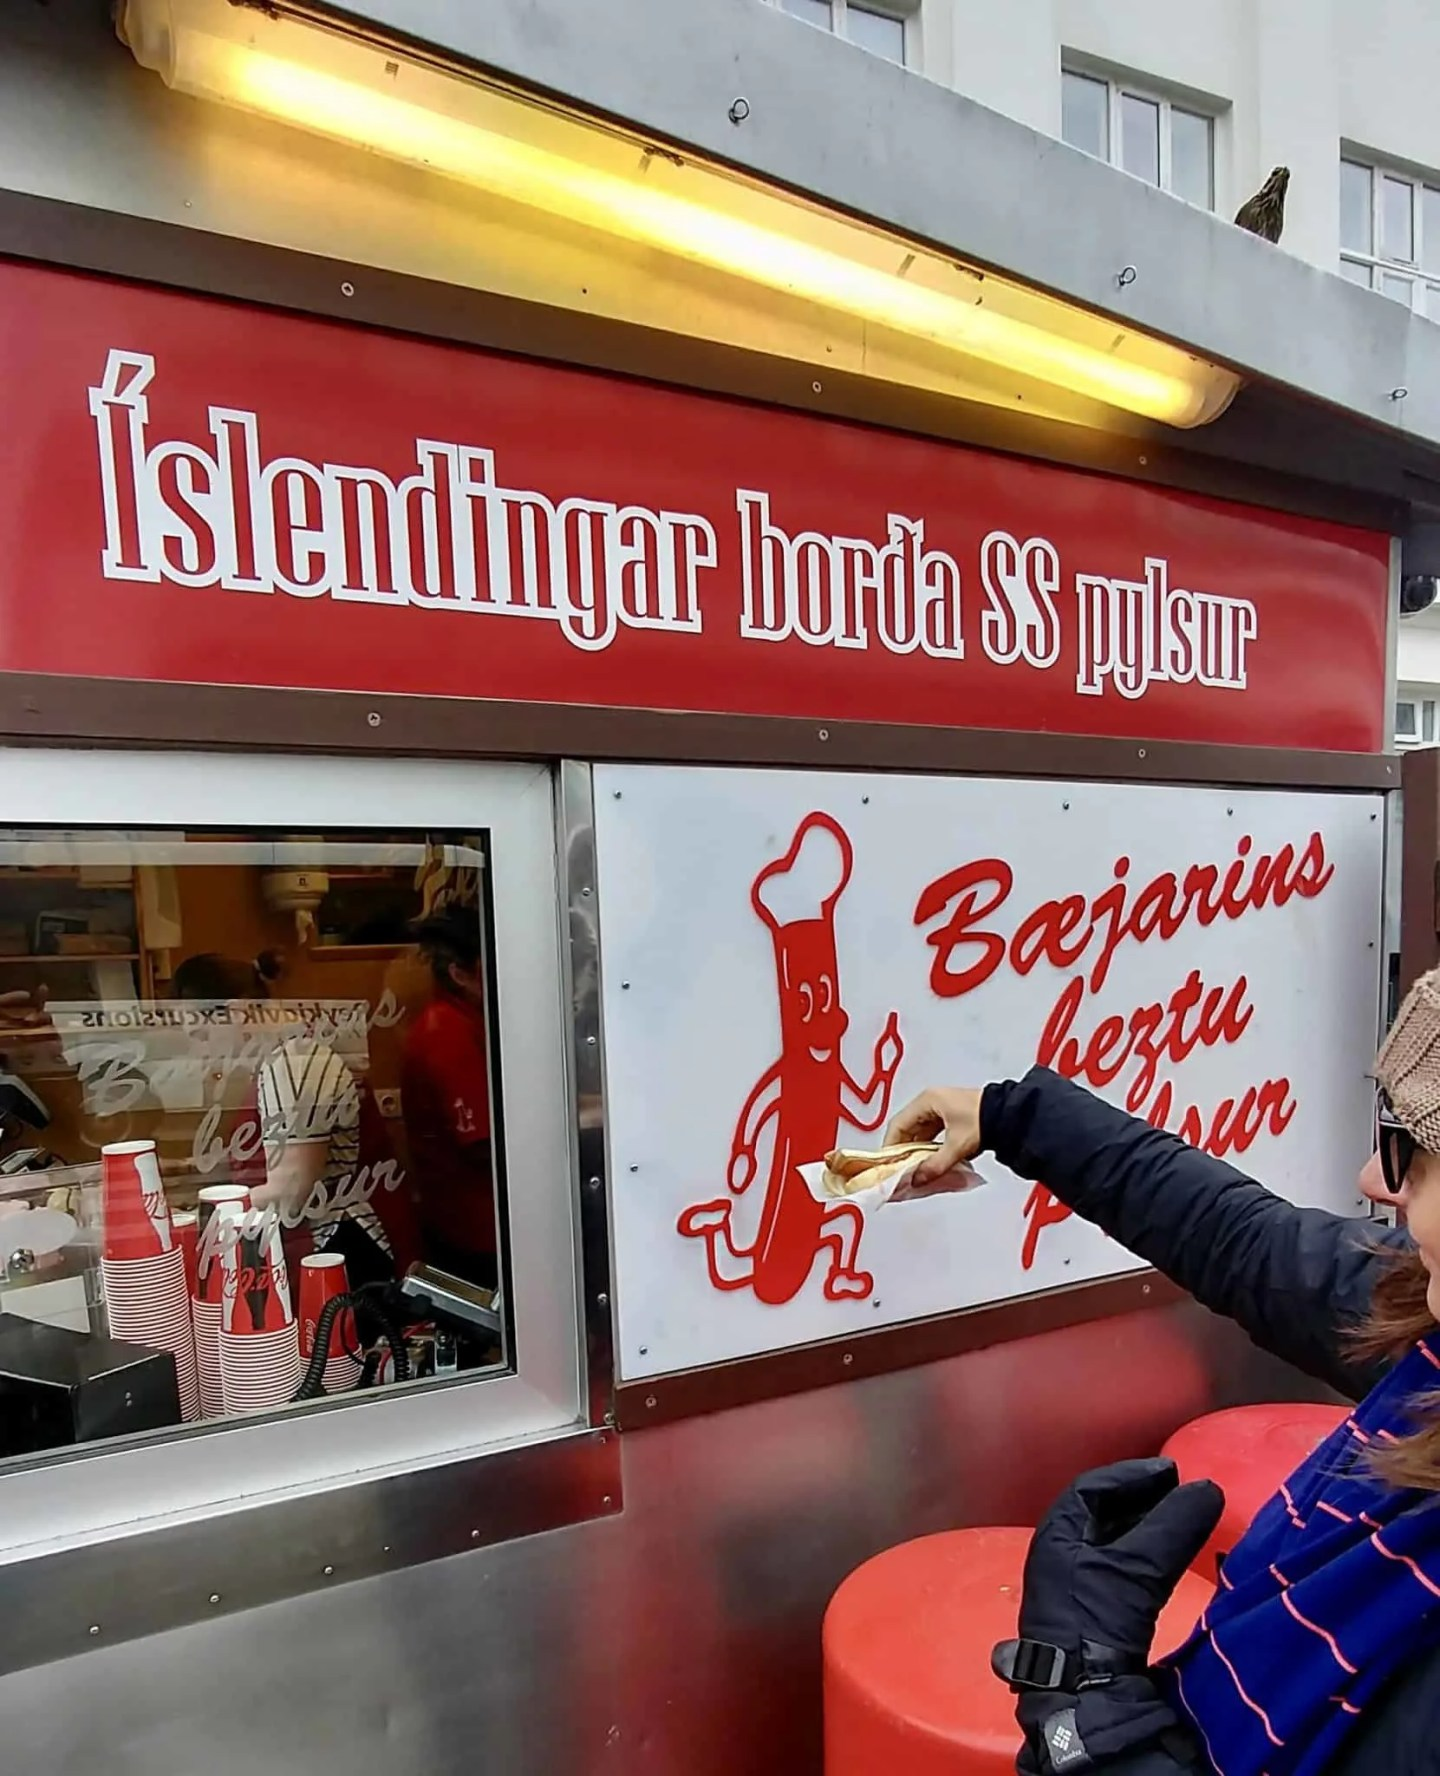 The Best Food Tour in Reykjavik Iceland